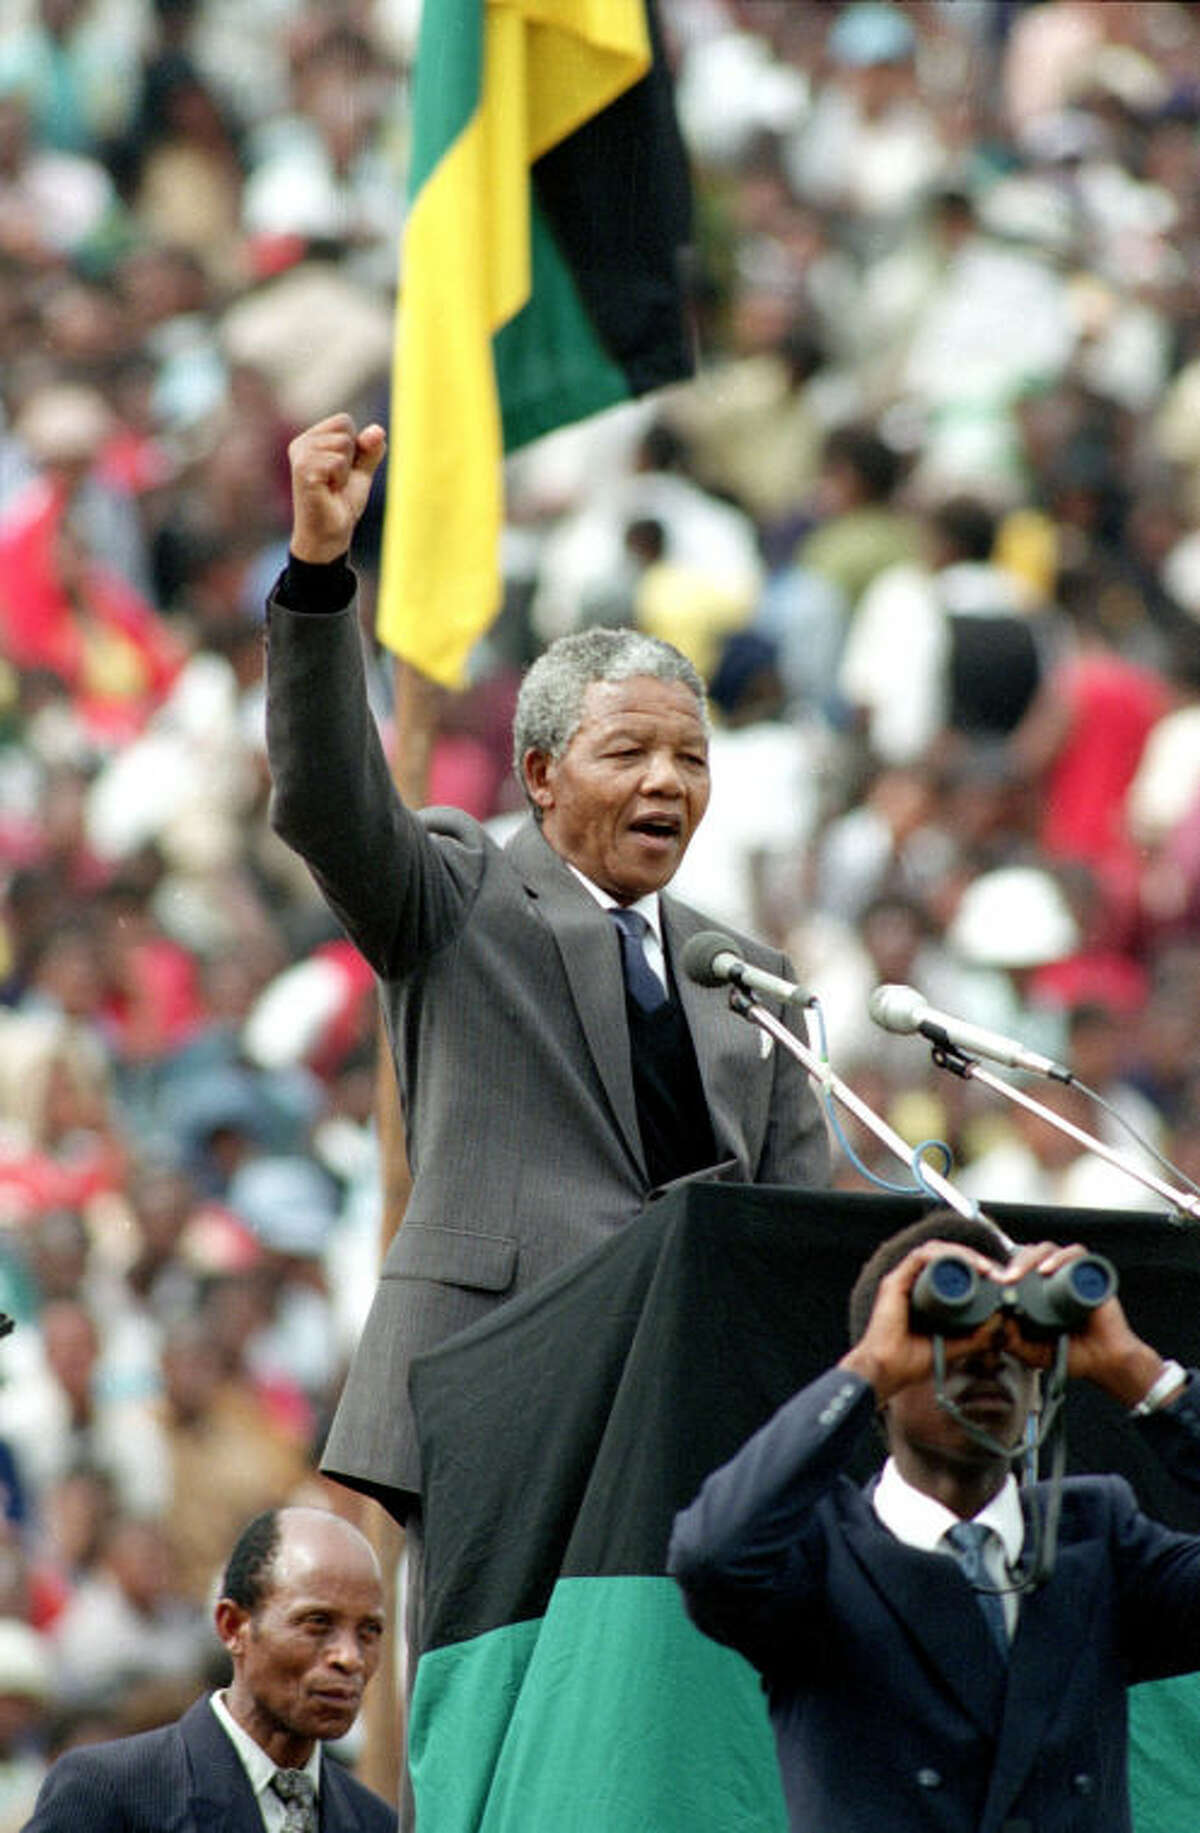 FILE - In this Feb. 13, 1990, file photo, African National Congress leader Nelson Mandela gives the black power salute to 120,000 ANC supporters packing Soccer City stadium in the Soweto township of Johannesburg, South Africa, shortly after his release from 27 years in prison. South Africa's president says, Thursday, Dec. 5, 2013, that Mandela has died. He was 95. (AP Photo, File)